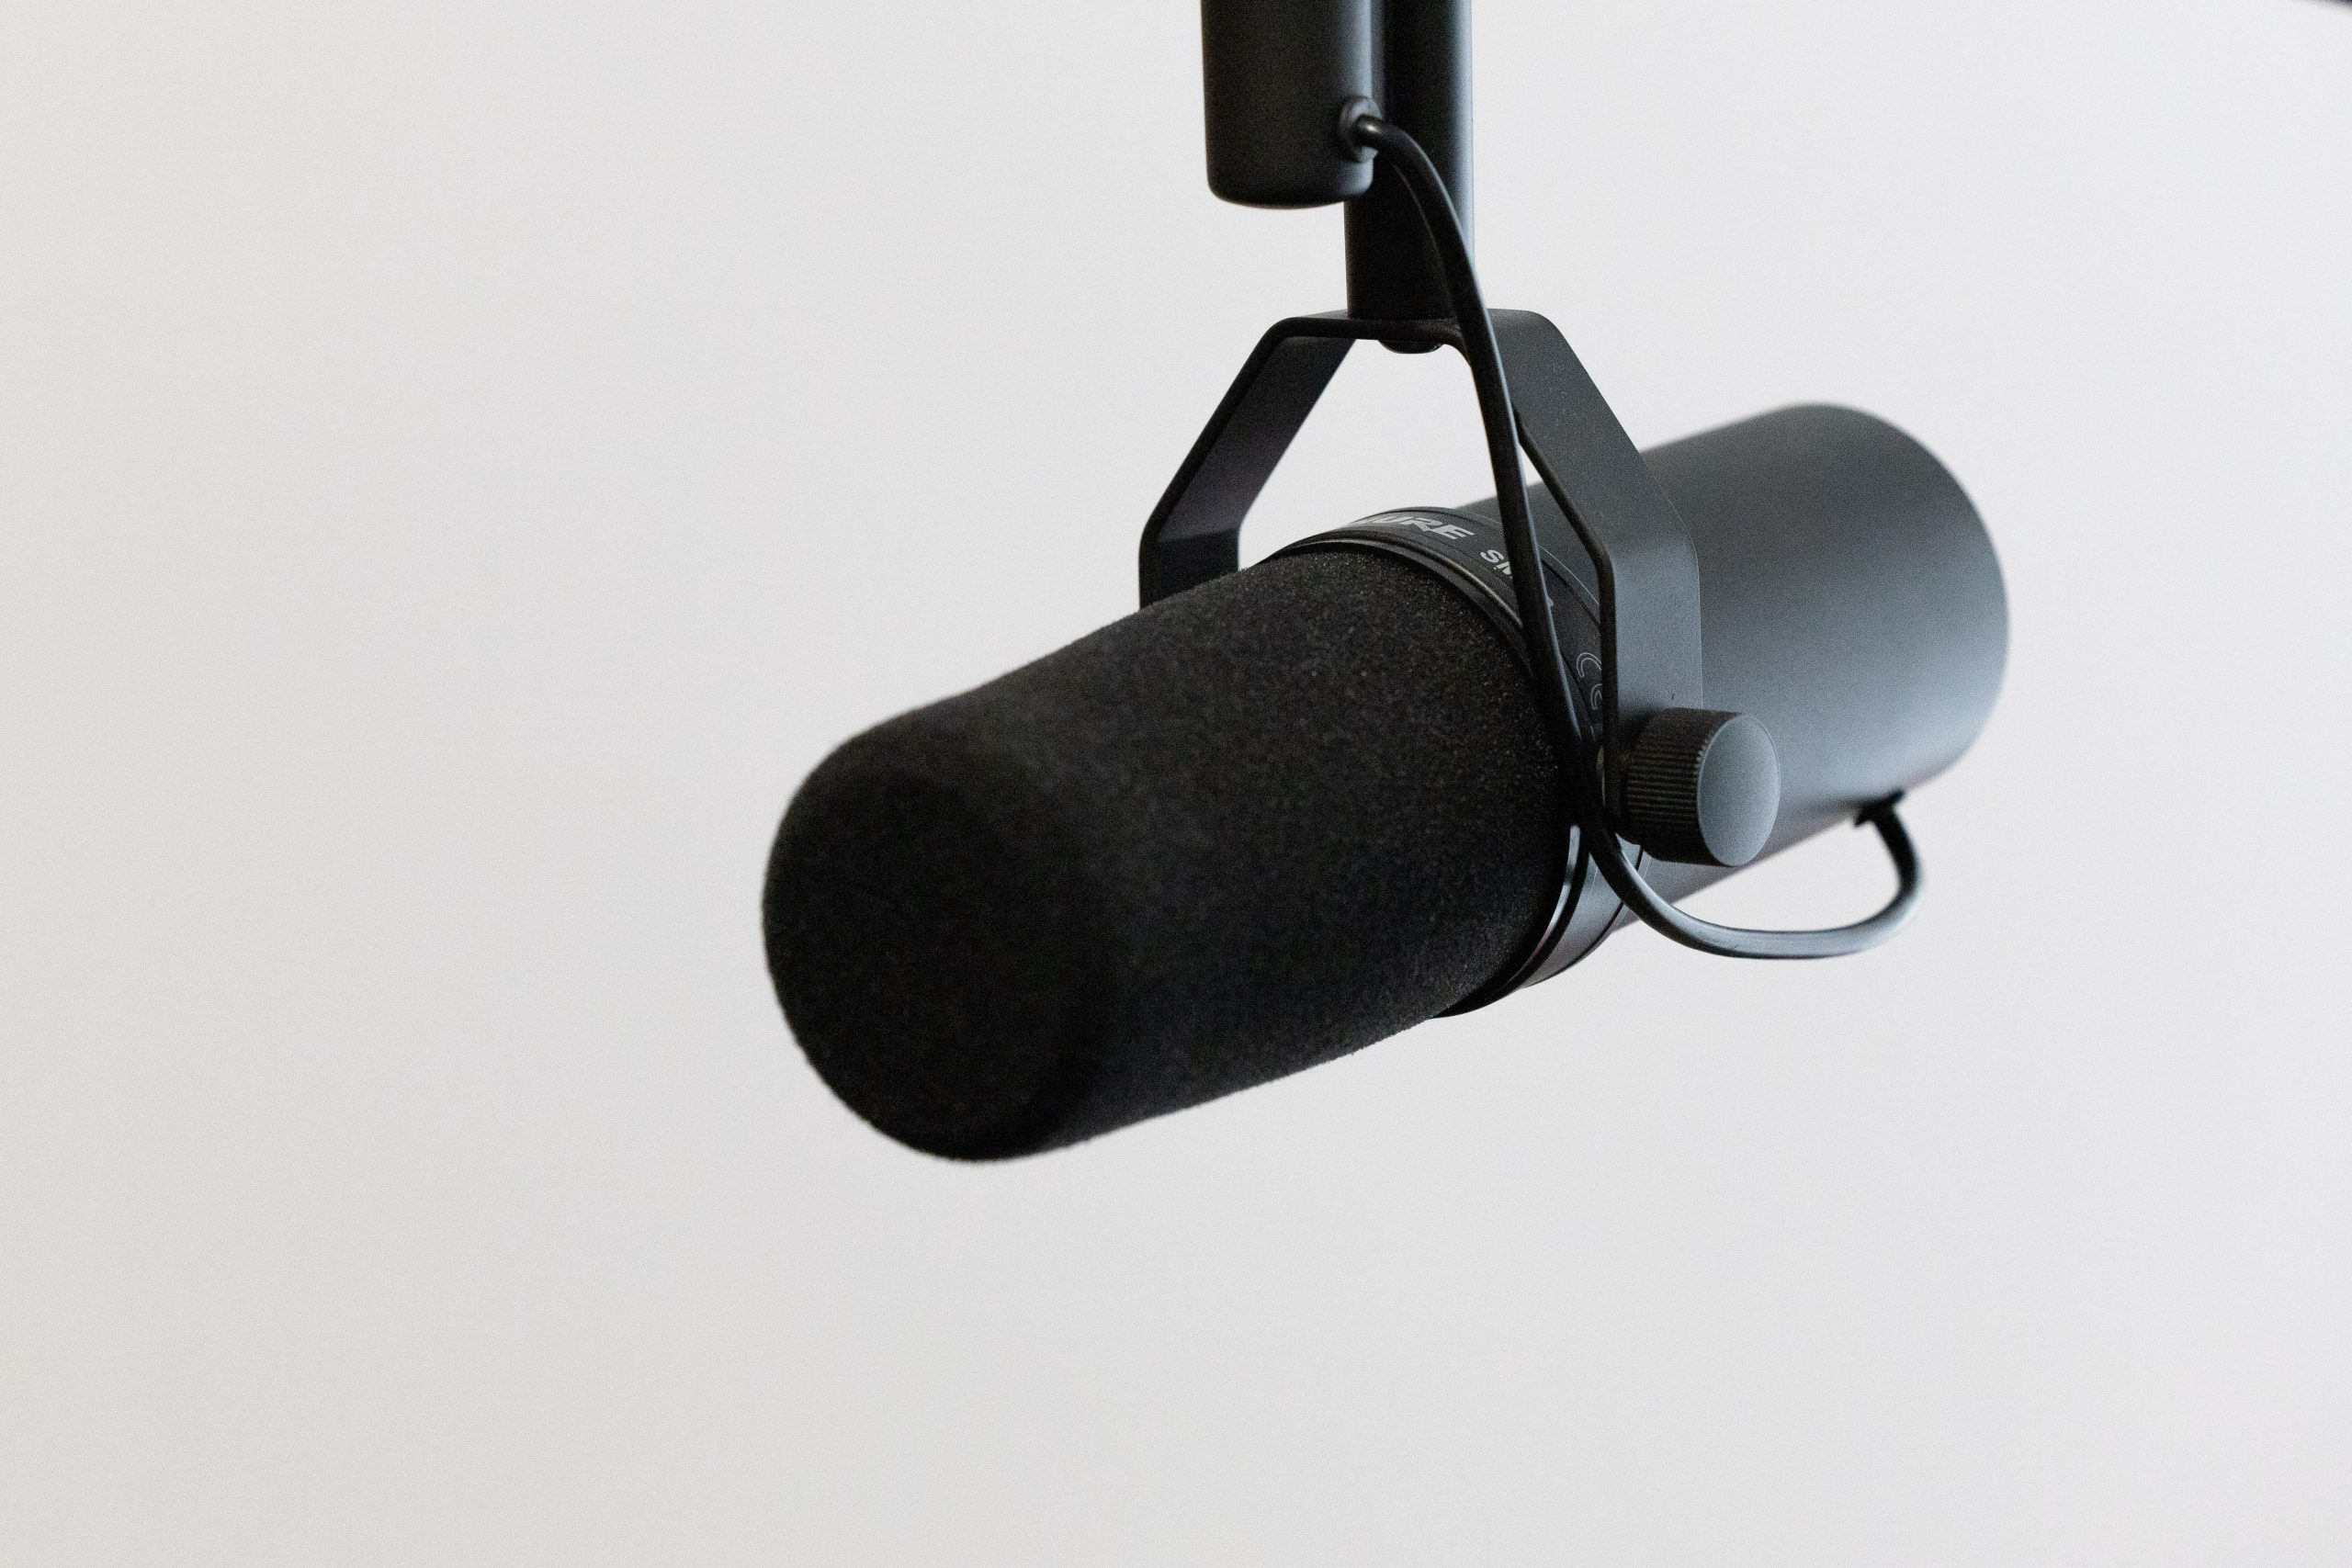 Podcast Mic - Essential Podcast Gear